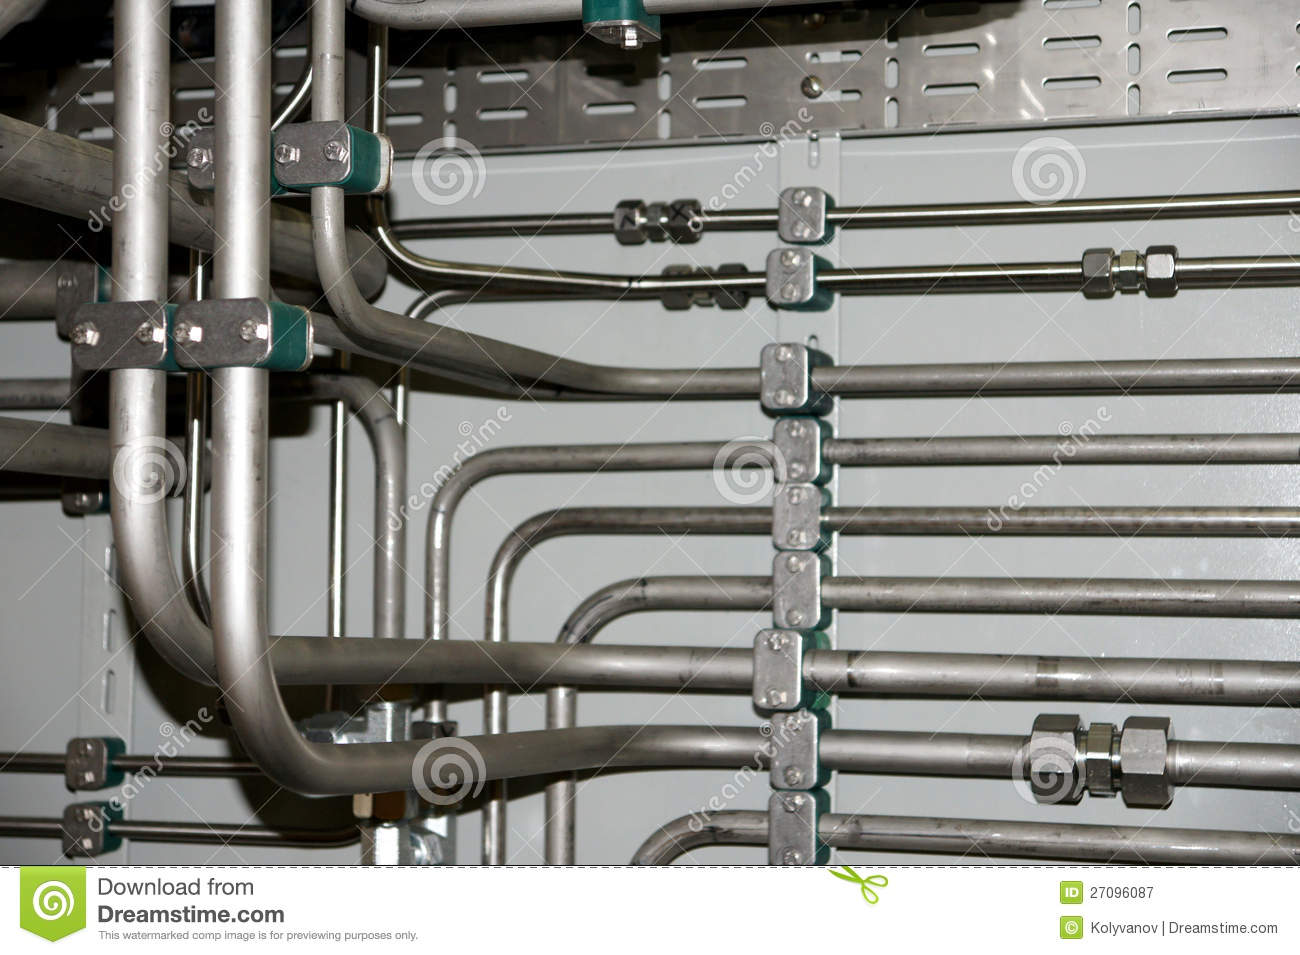 Hydraulic Pipes Royalty Free Stock Photography - Image: 27096087